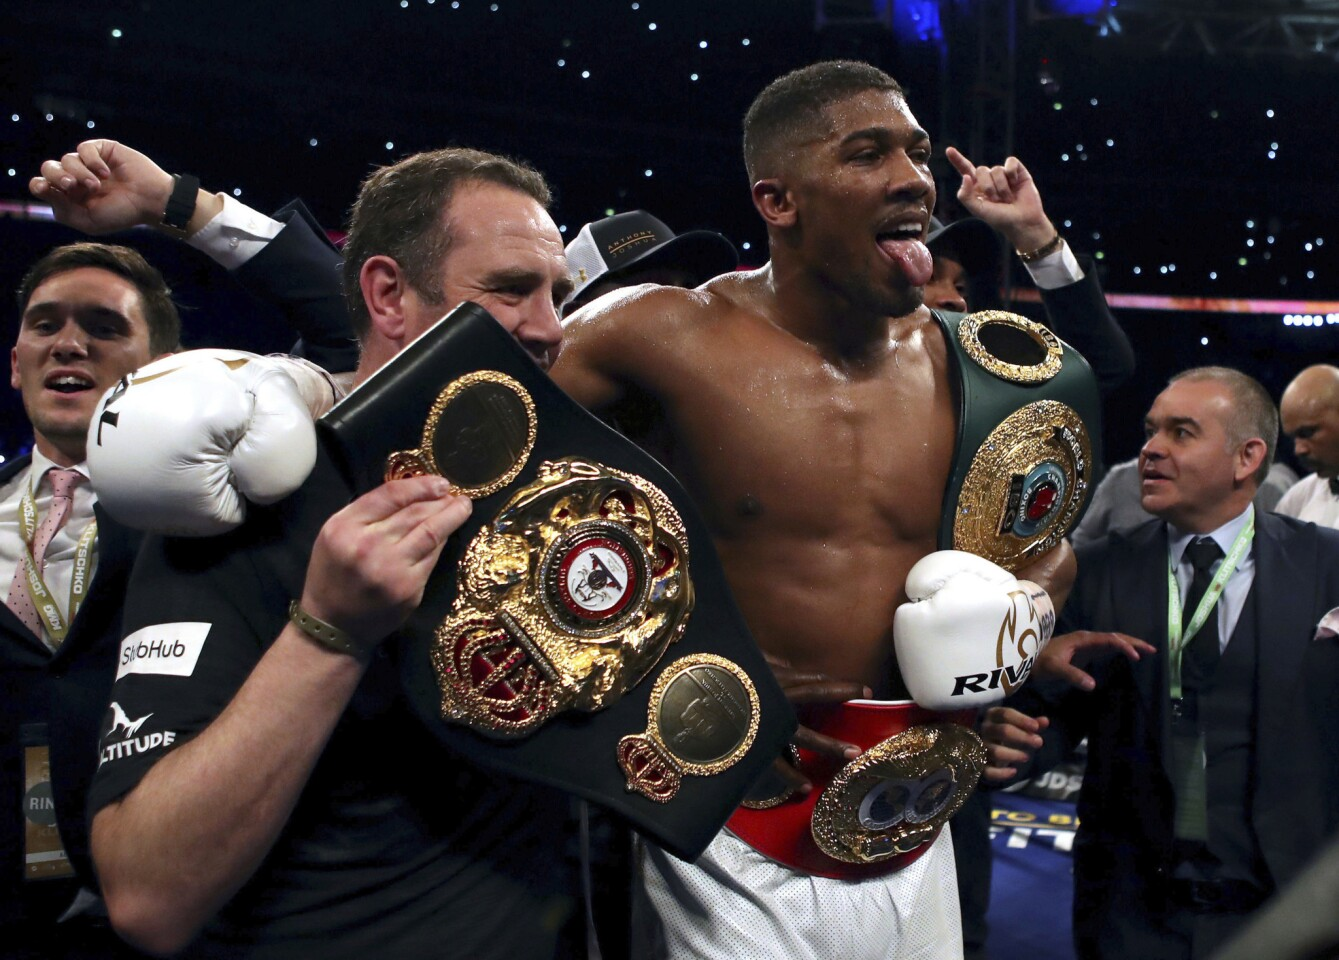 Anthony Joshua of Britain celebrates after defeatingWladimir Klitschko of Ukraine by technical knockout for the heavyweight title.